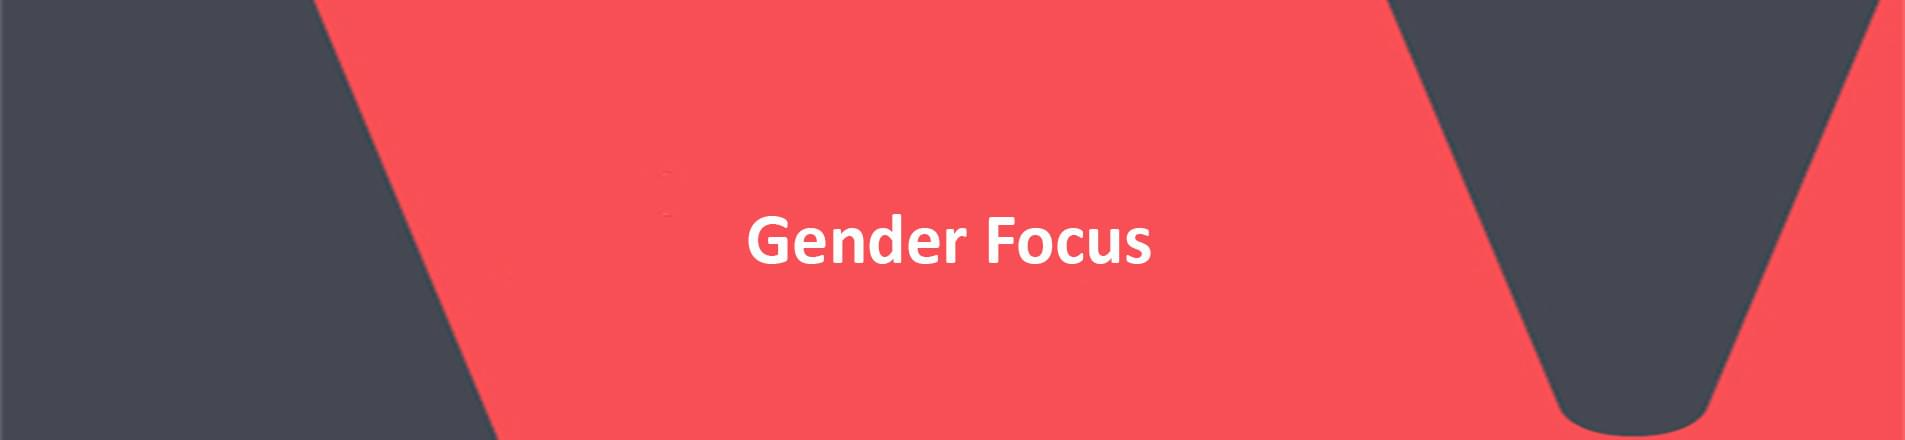 The words gender focus in white on a red VERCIDA branded background